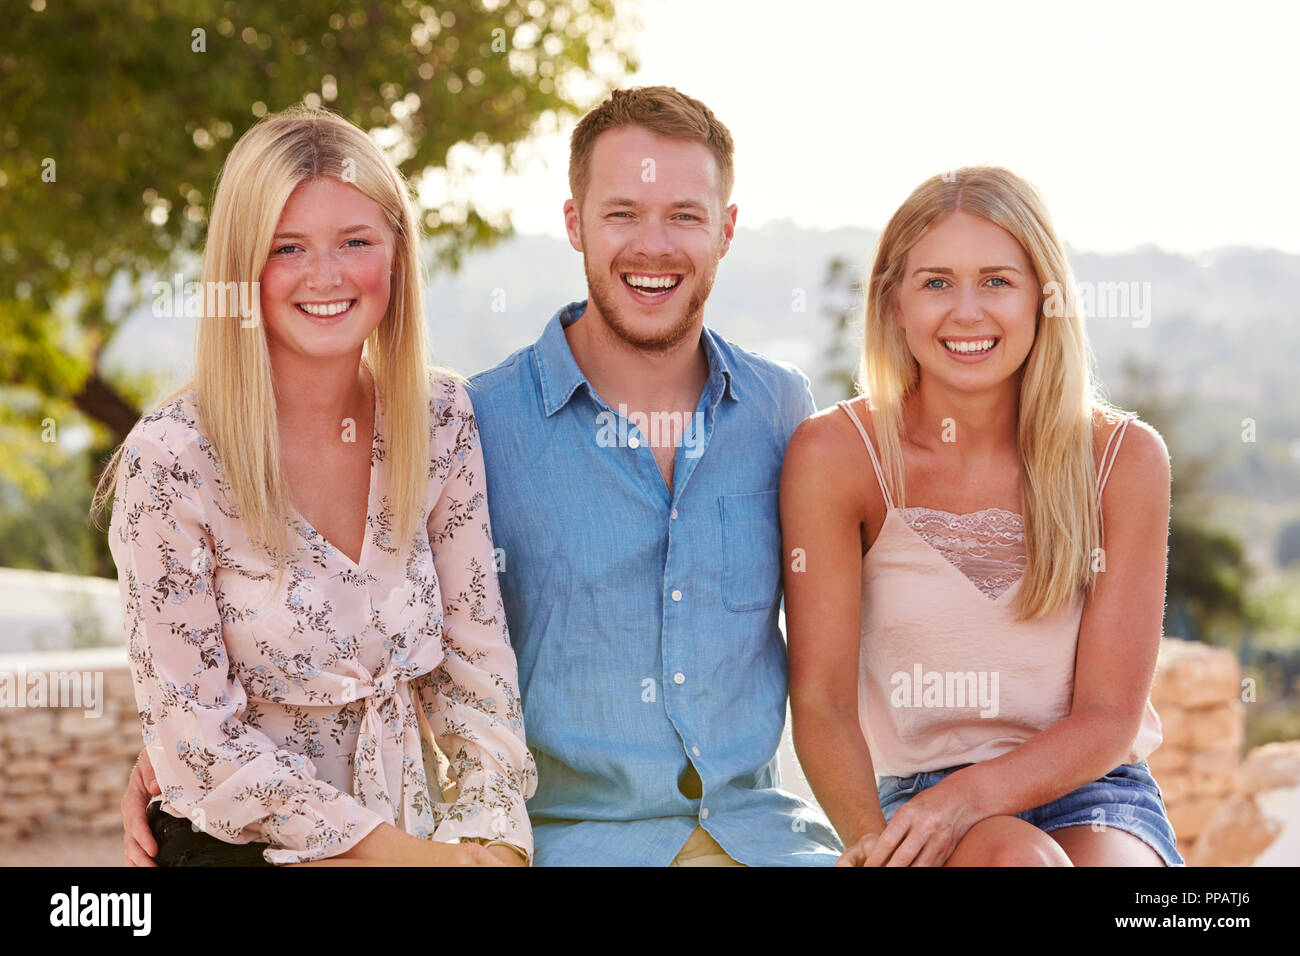 Portrait Of Young Friends Having Fun On Holiday Together - Stock Image